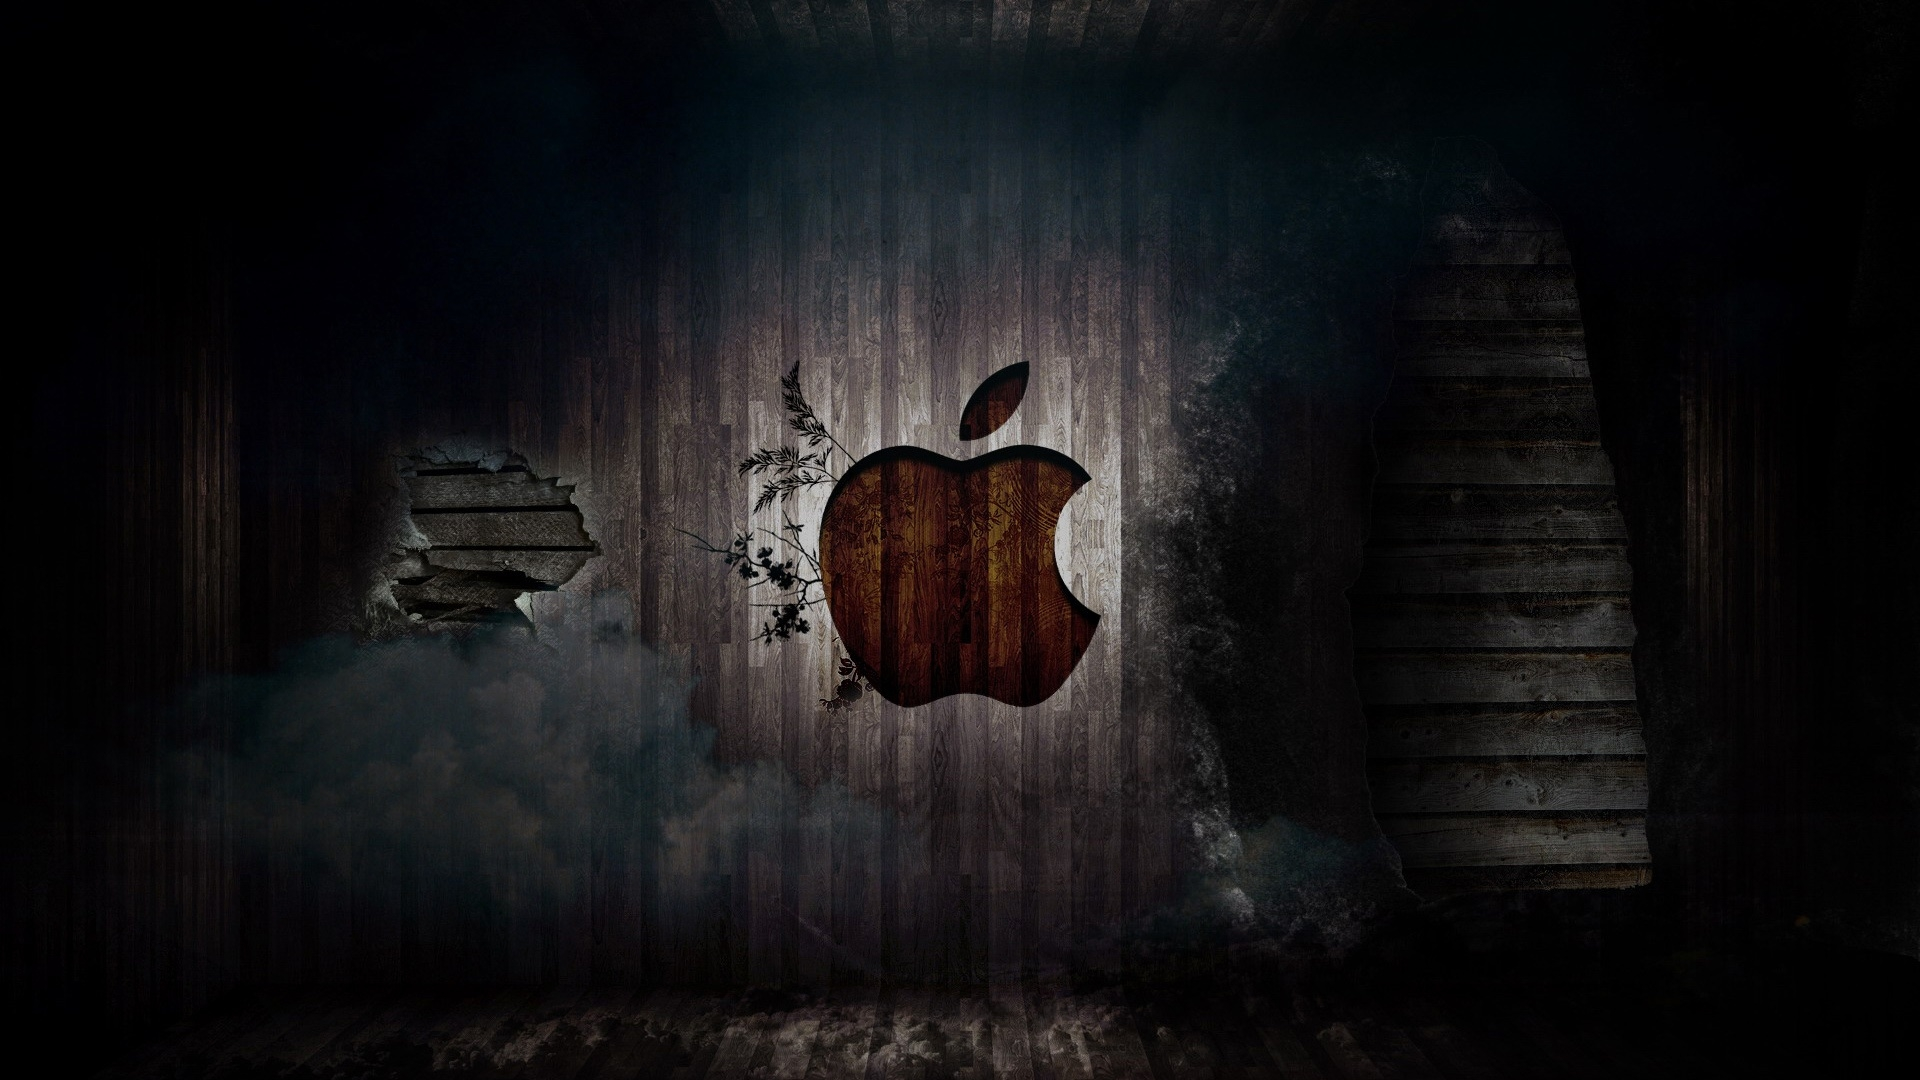 hd apple wallpapers 1080p #22